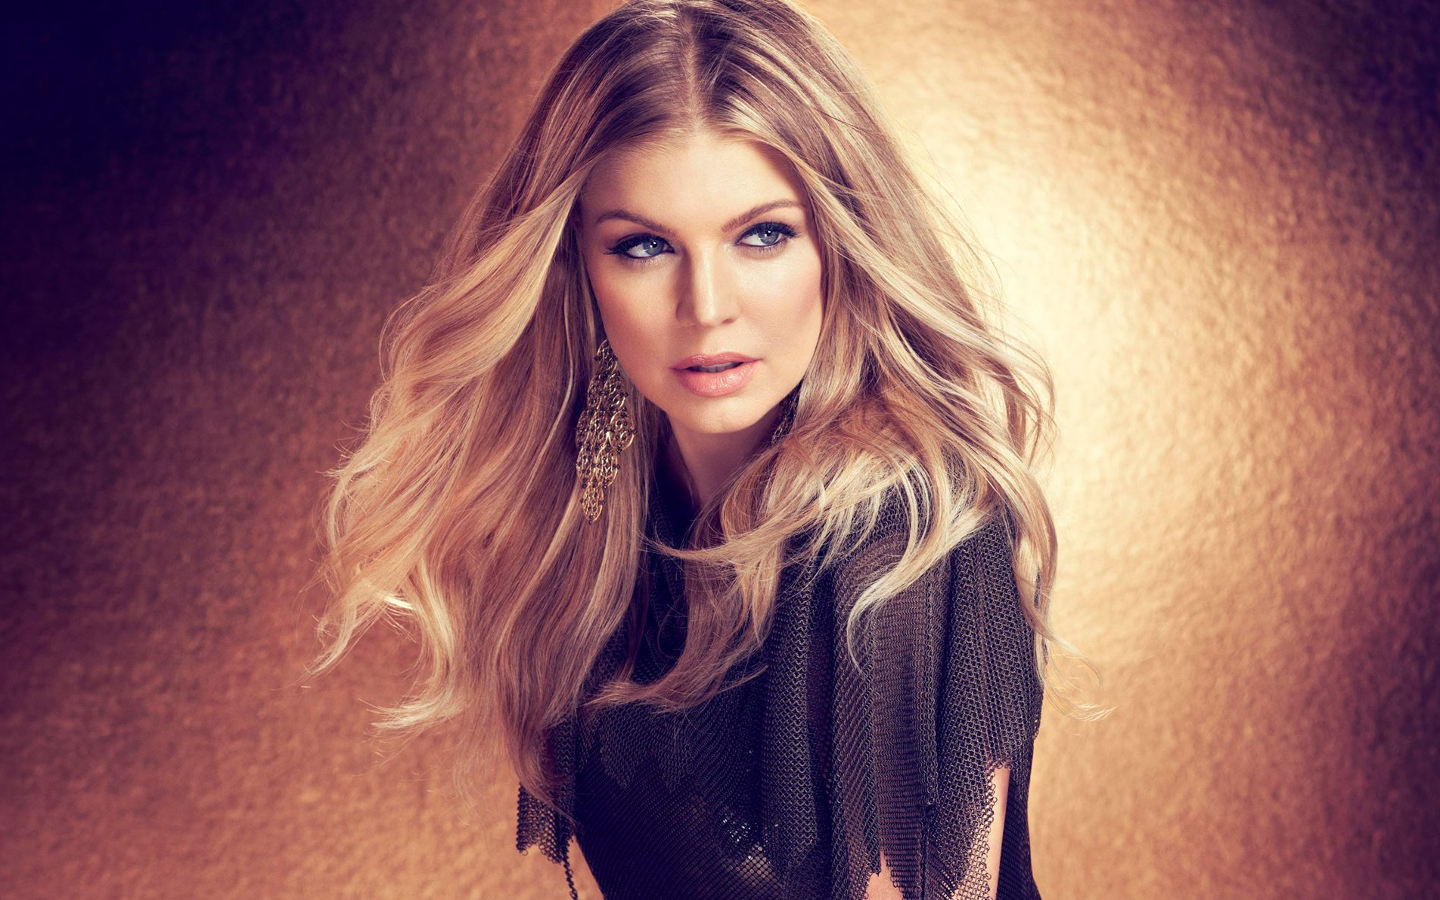 Fergie images Fergie glamorous HD wallpaper and background photos ... Fergie